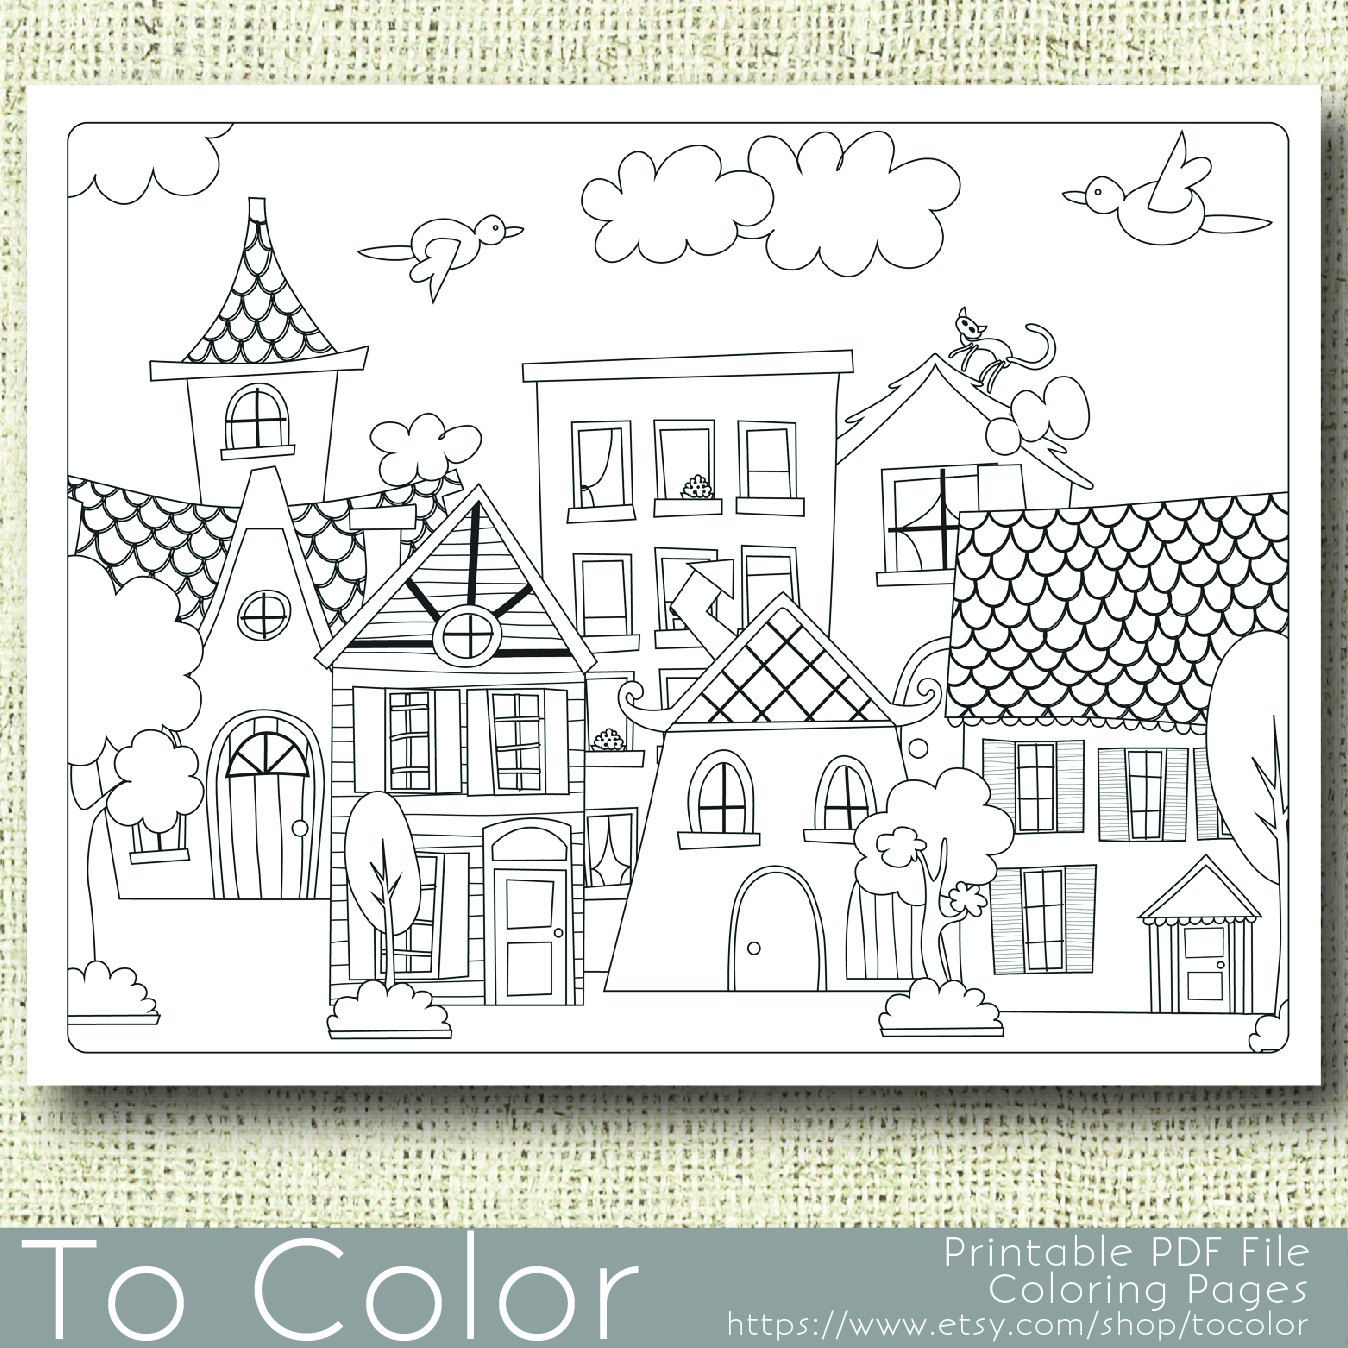 House colouring pages easy coloring pages coloring pages for grown ups free printable